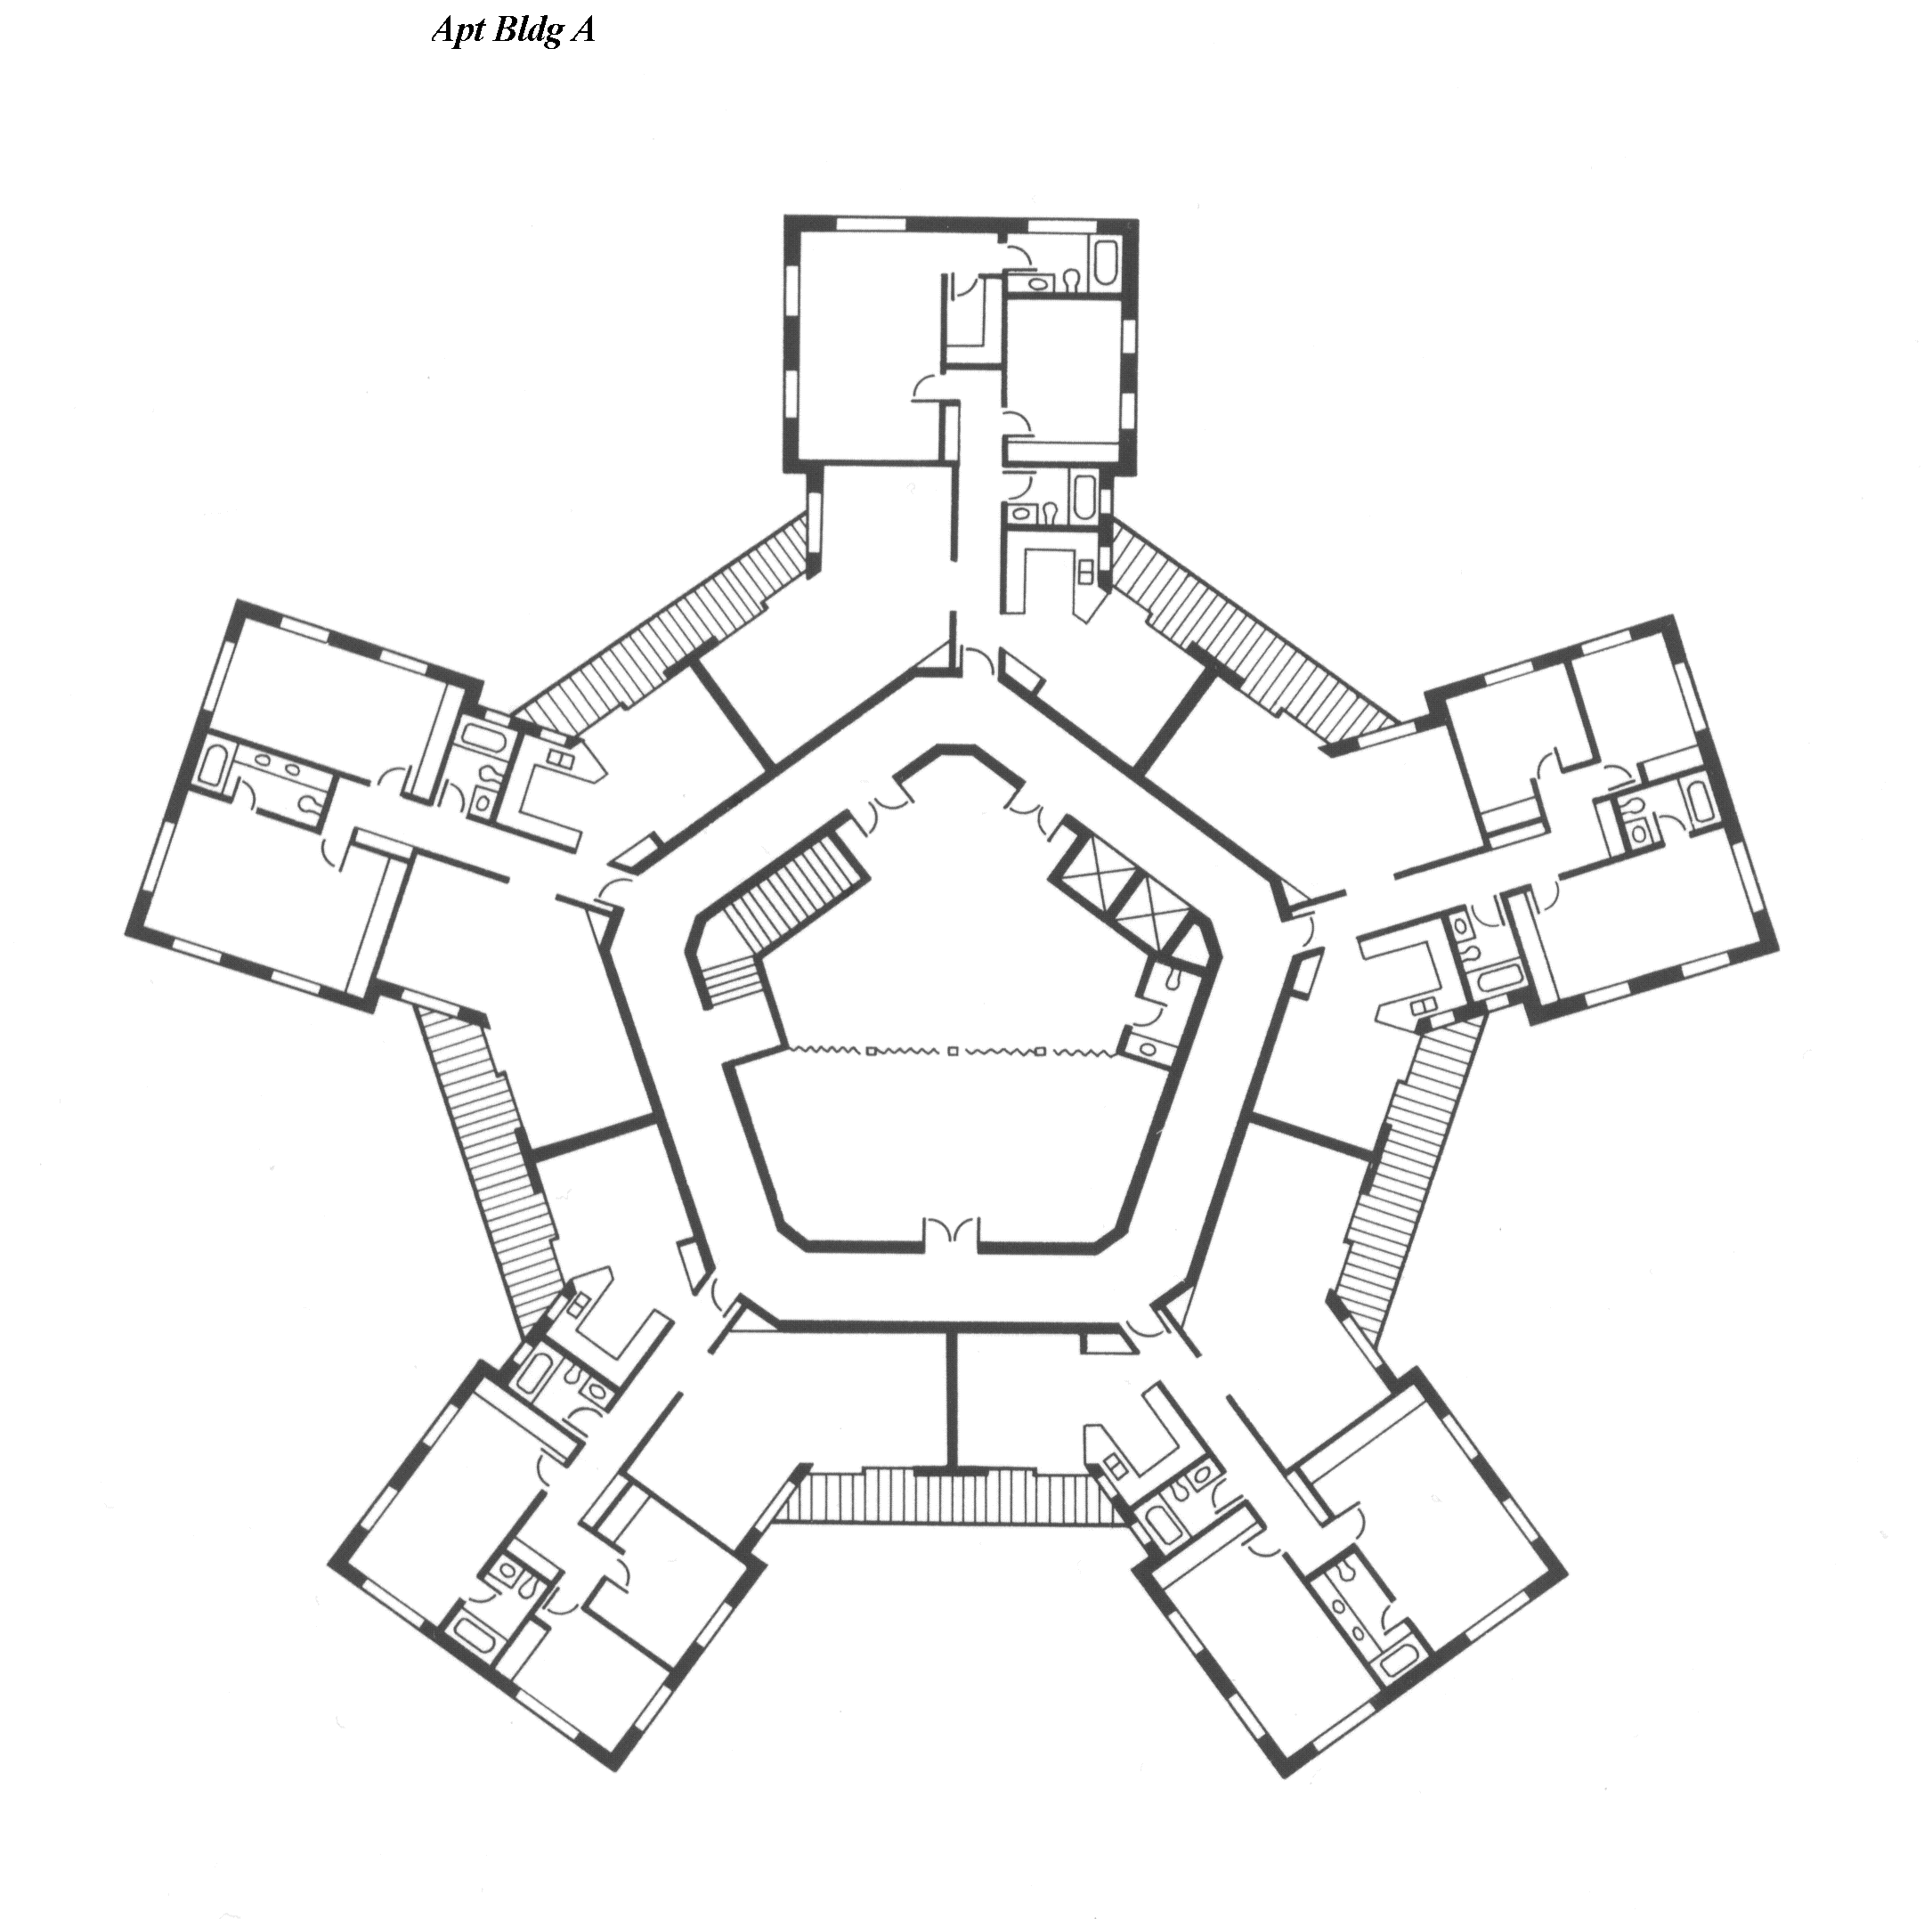 Drawings of various microcommunity mc configurations for Apartment complex building plans